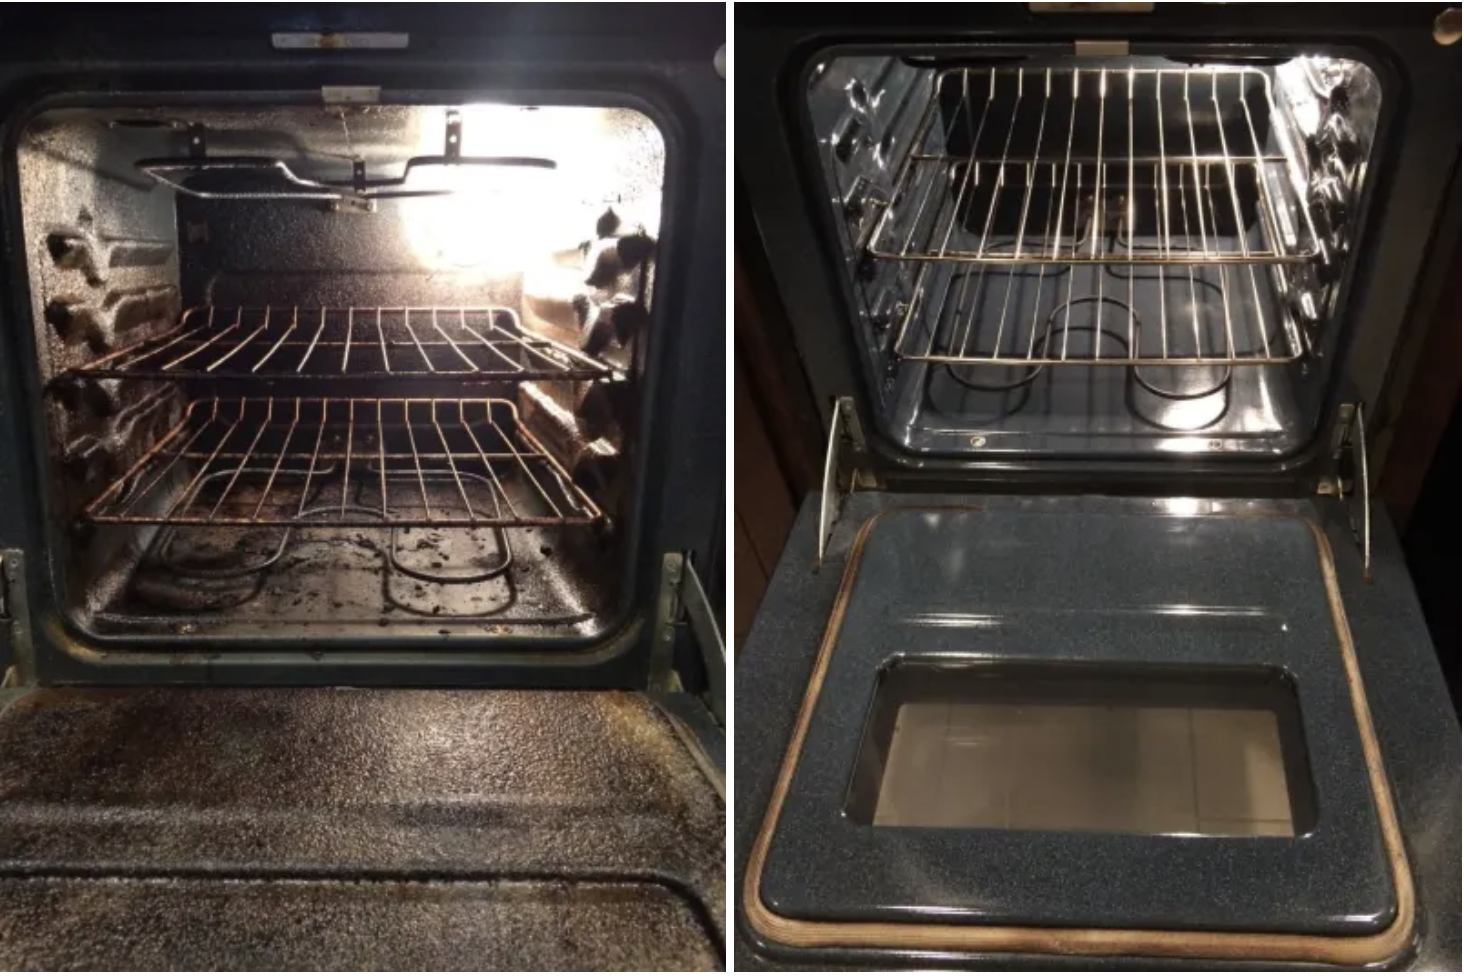 A reviewer's oven before (with baked-on grease) and after (totally shiny and new-looking) cleaning